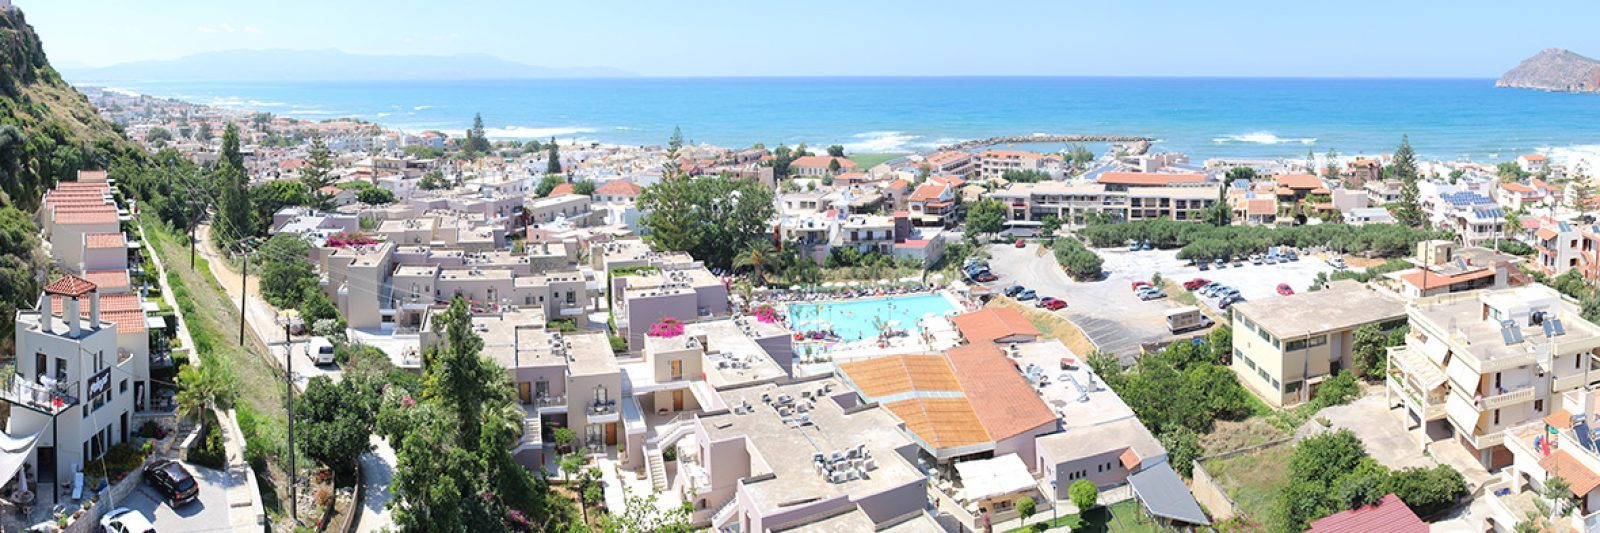 Pelagos Holidays Apartments over Platanias with view on Agioi Theodoroi Island